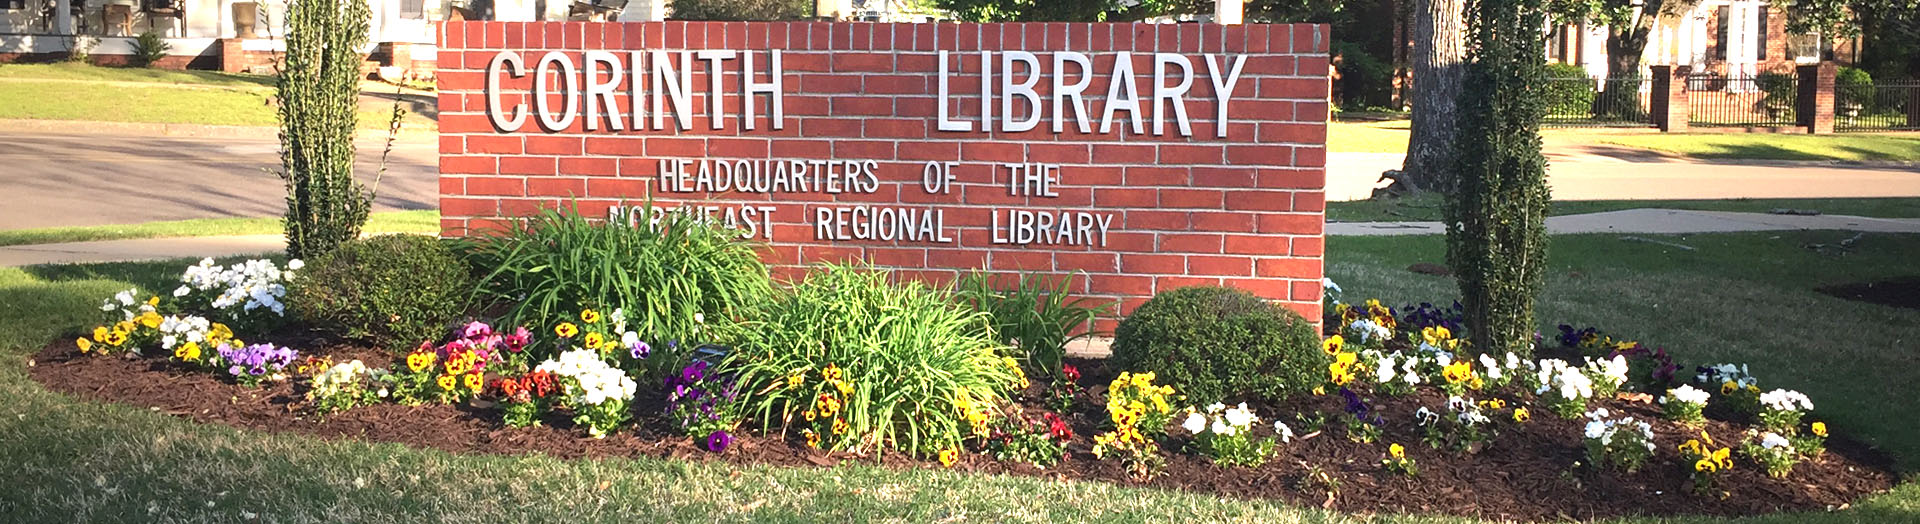 Northeast Regional Library